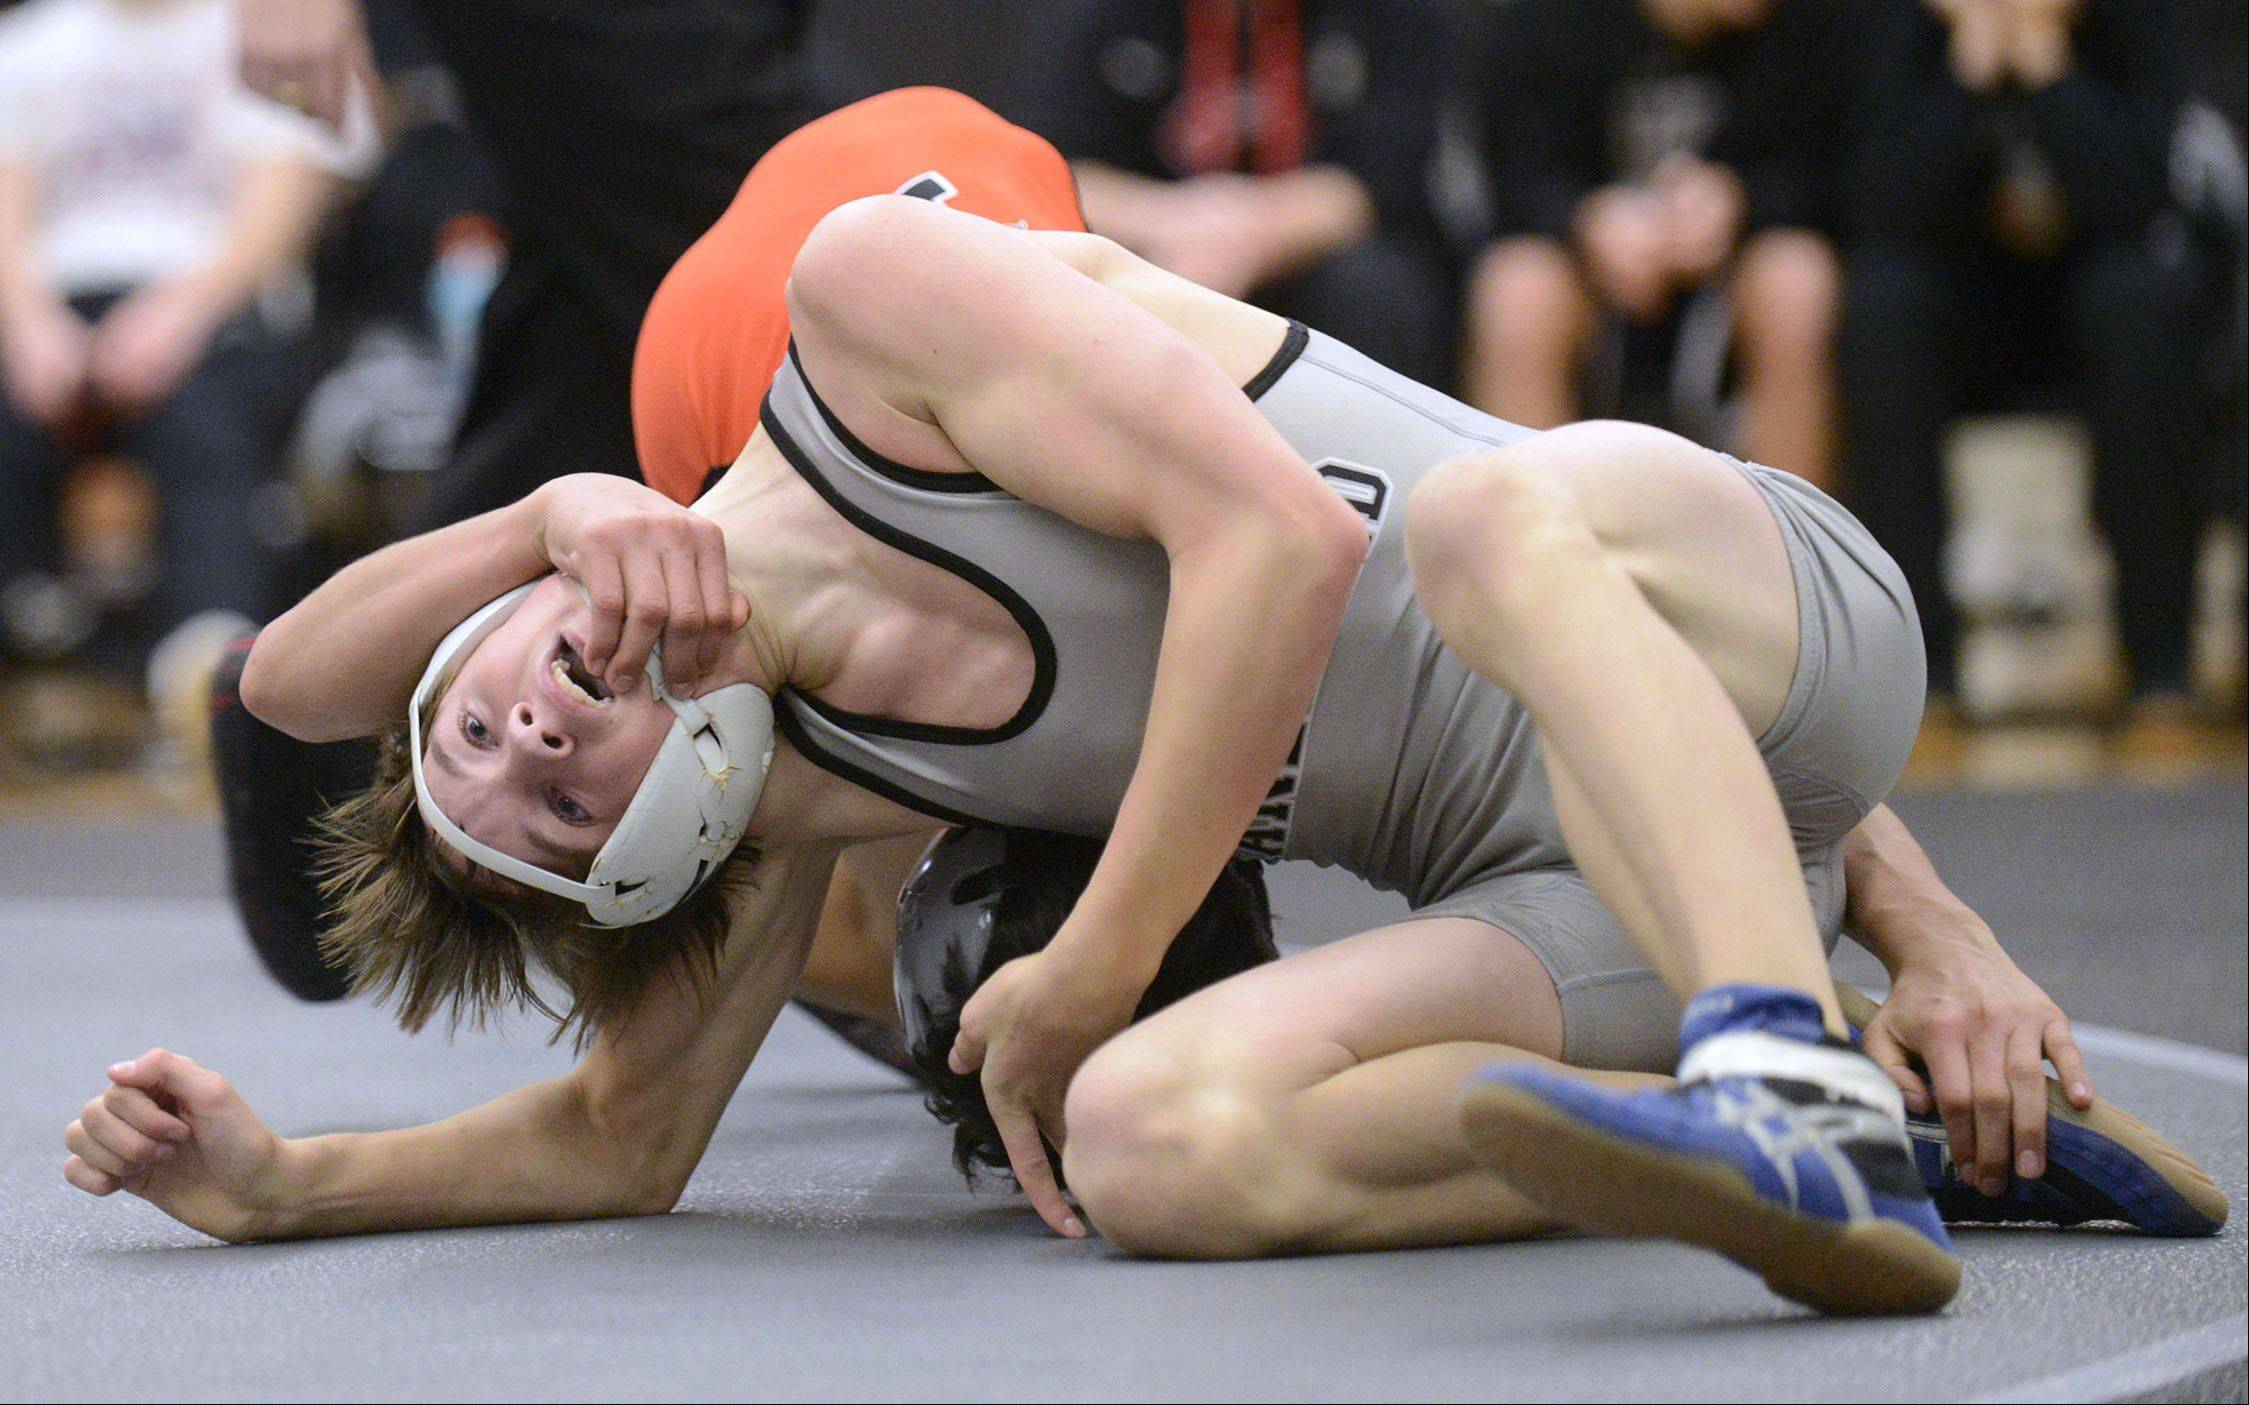 Kaneland's Adam Mish and DeKalb's Ulises Jacobo in the 113 pound match on Thursday, December 12. Jacobo took the win.